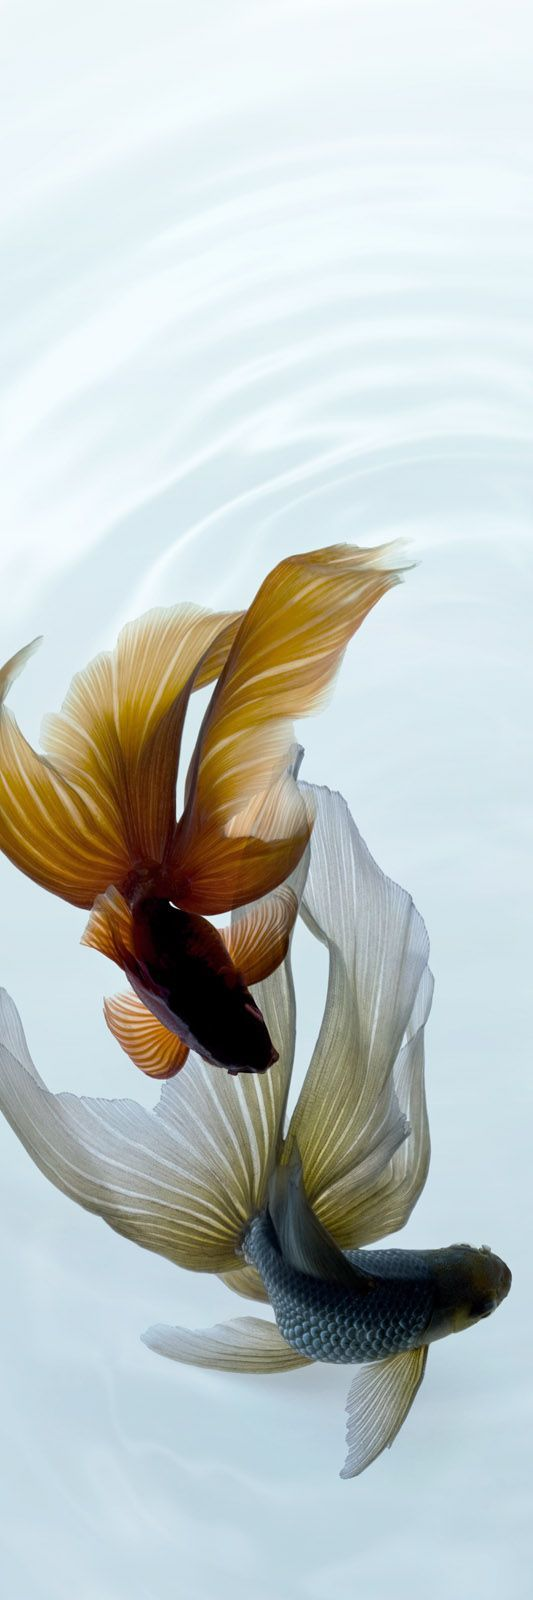 Fancy goldfish and koi were originally bred to be viewed from above. This dance shows why.